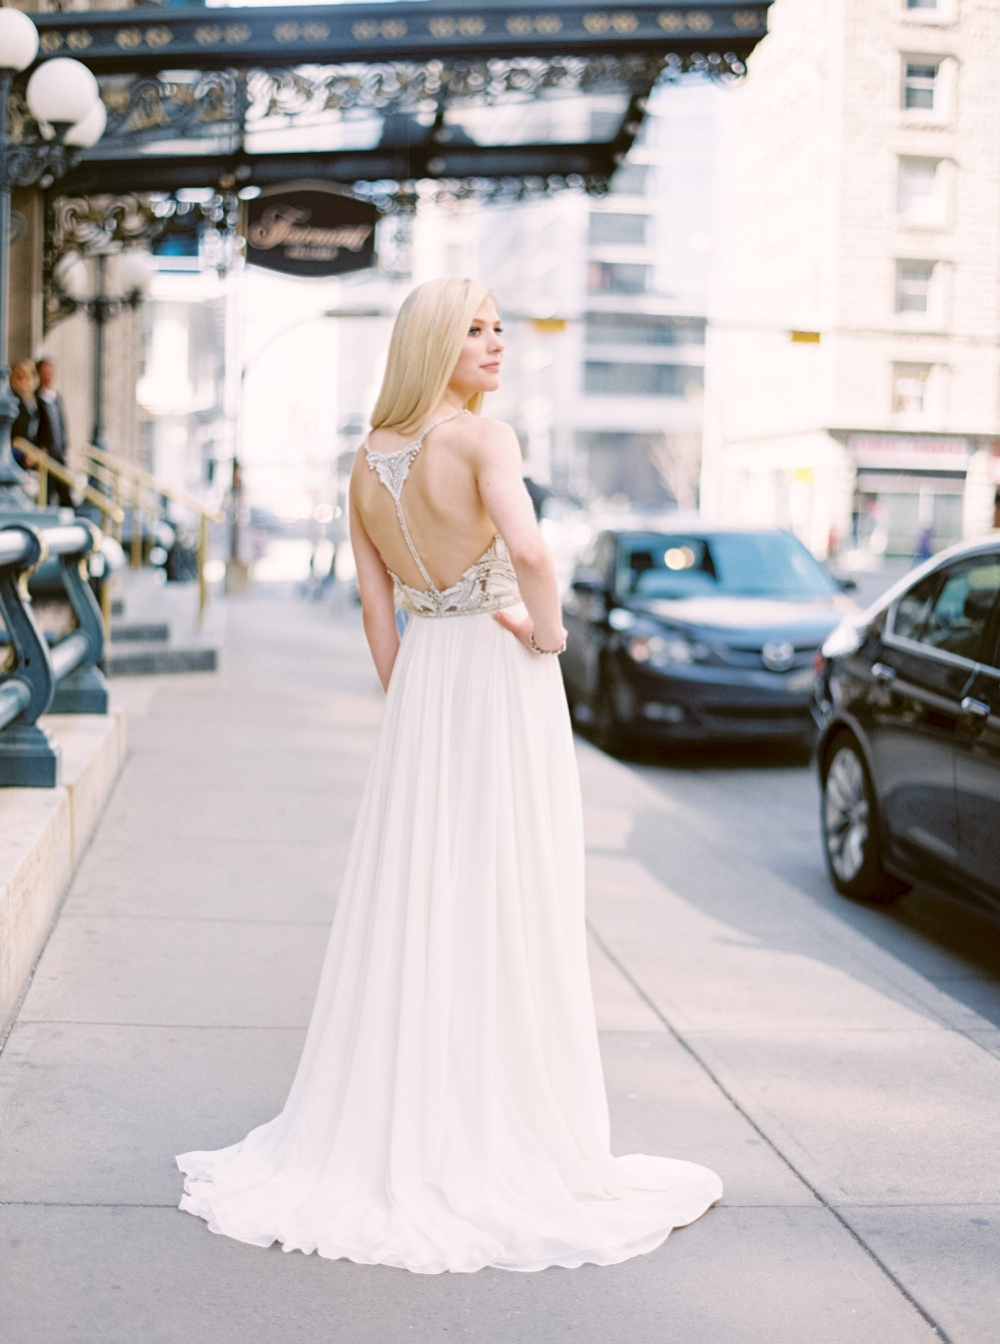 Bridal Editorial | Calgary Bridal Boutique | Hayley Paige Trunk Show | Calgary Wedding Photographers